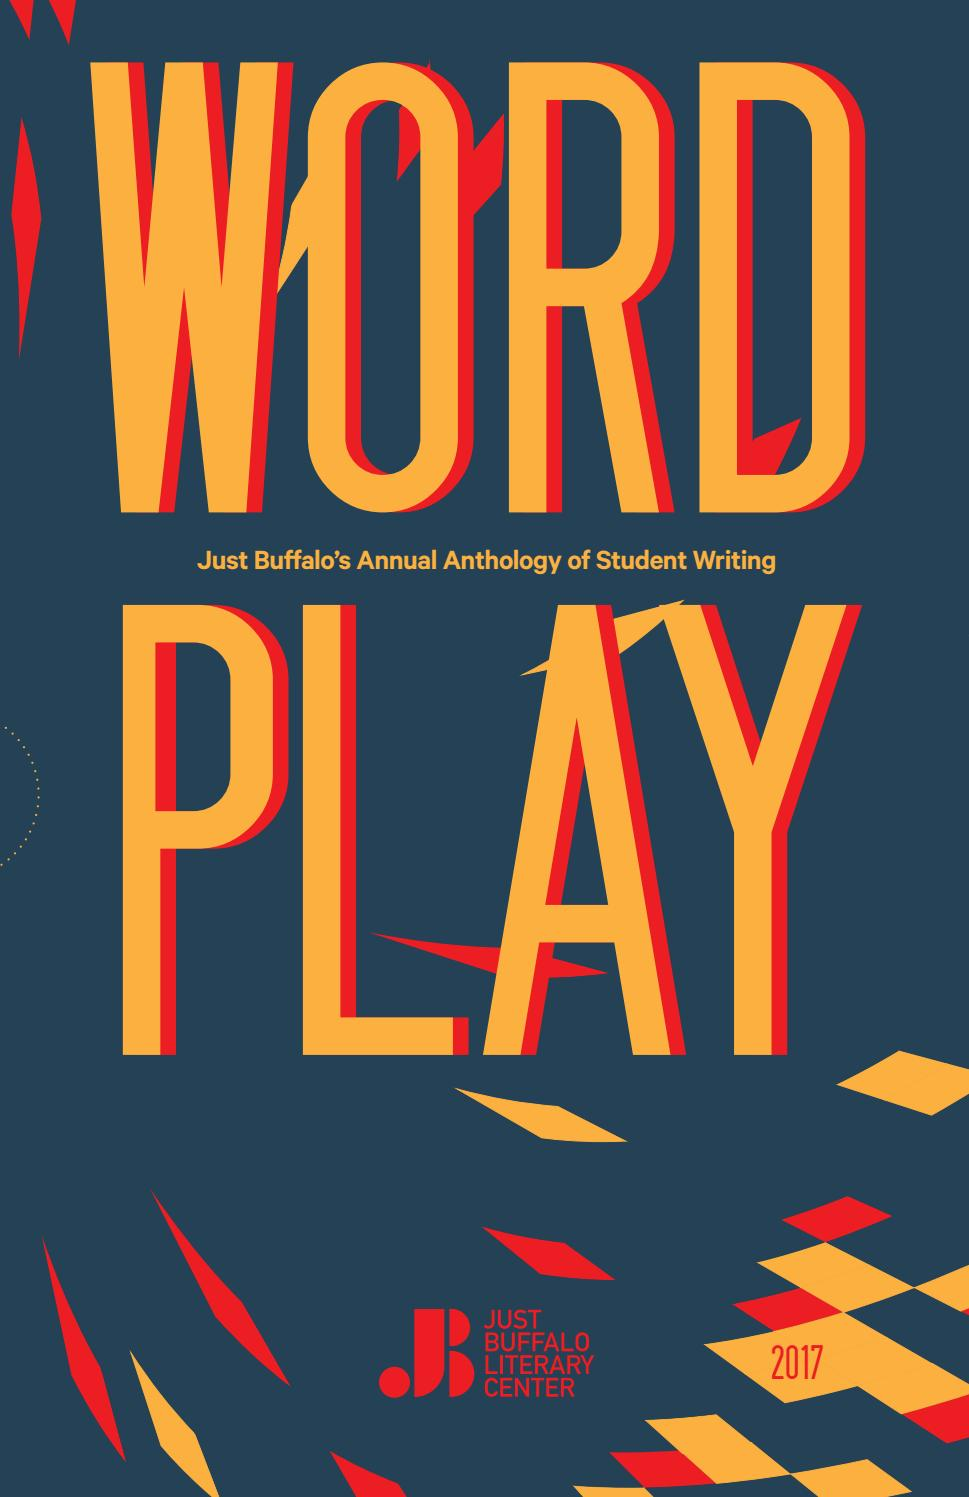 Wordplay 2017 by Just Buffalo Literary Center - issuu